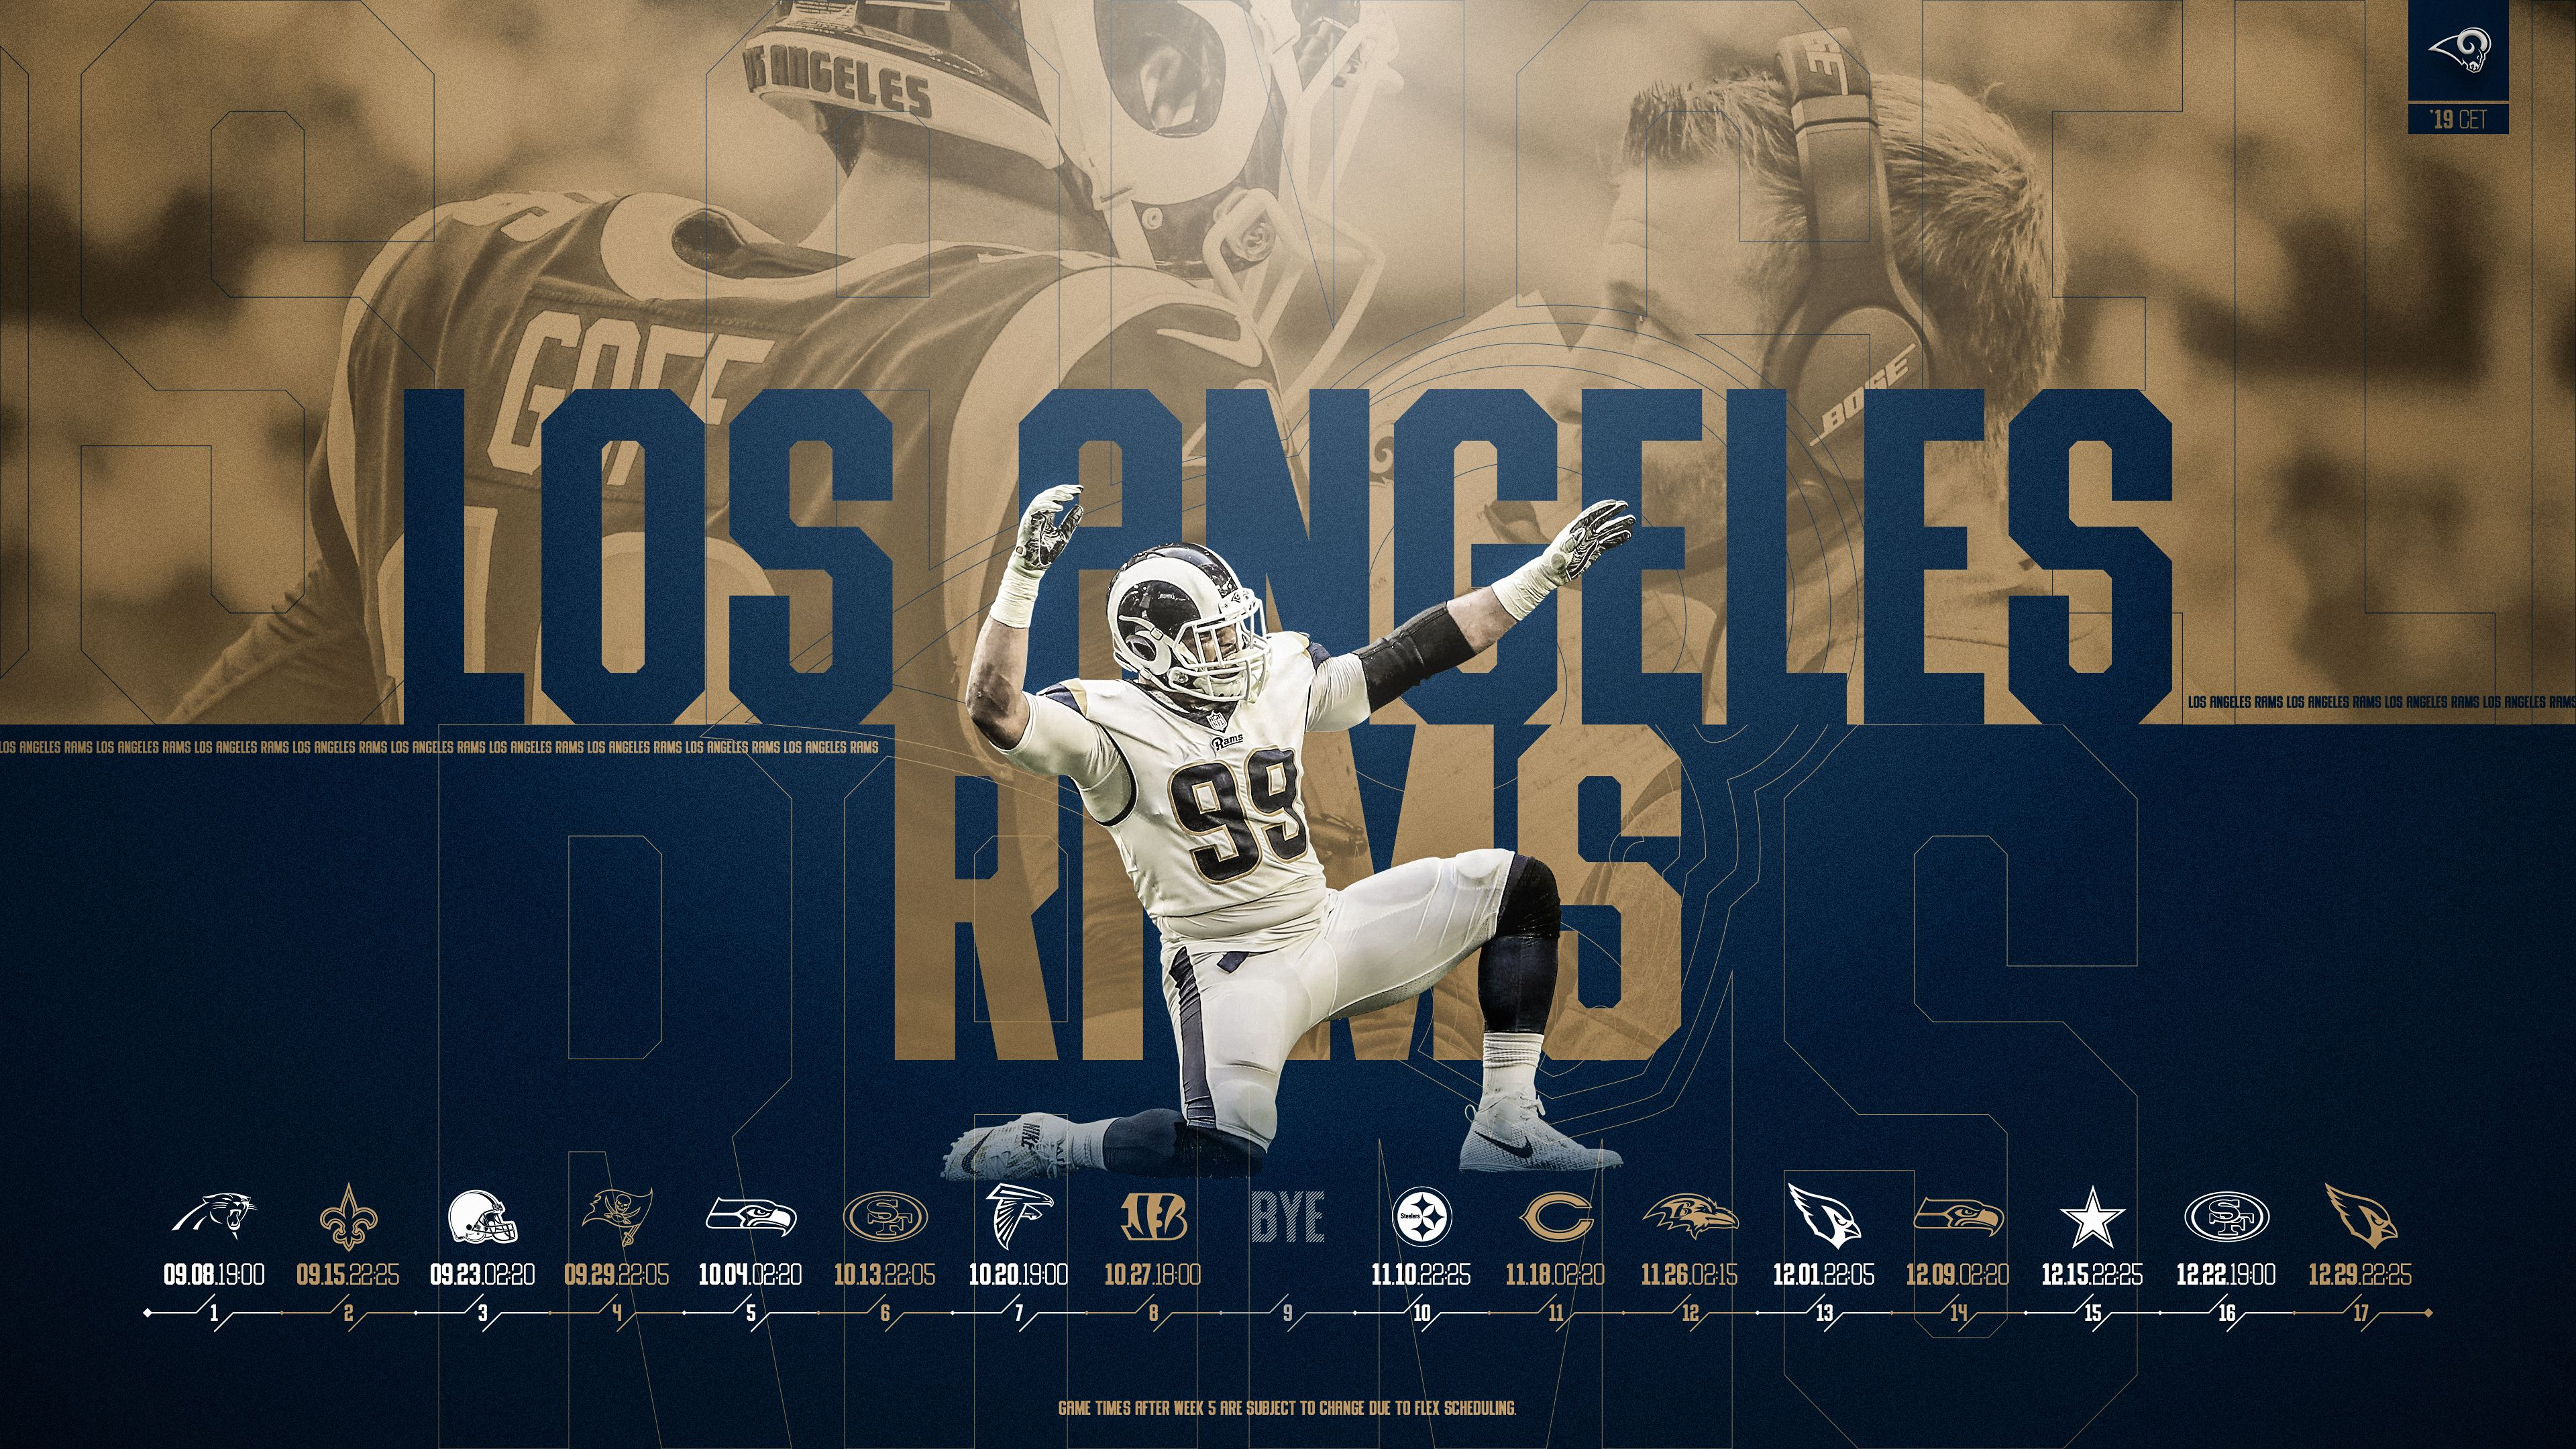 Schedule Wallpaper For The Los Angeles Rams Regular Season 2019 Central European Time Made By Tobler Gergo Tgersdiy Wallpaper Los Angeles Rams European